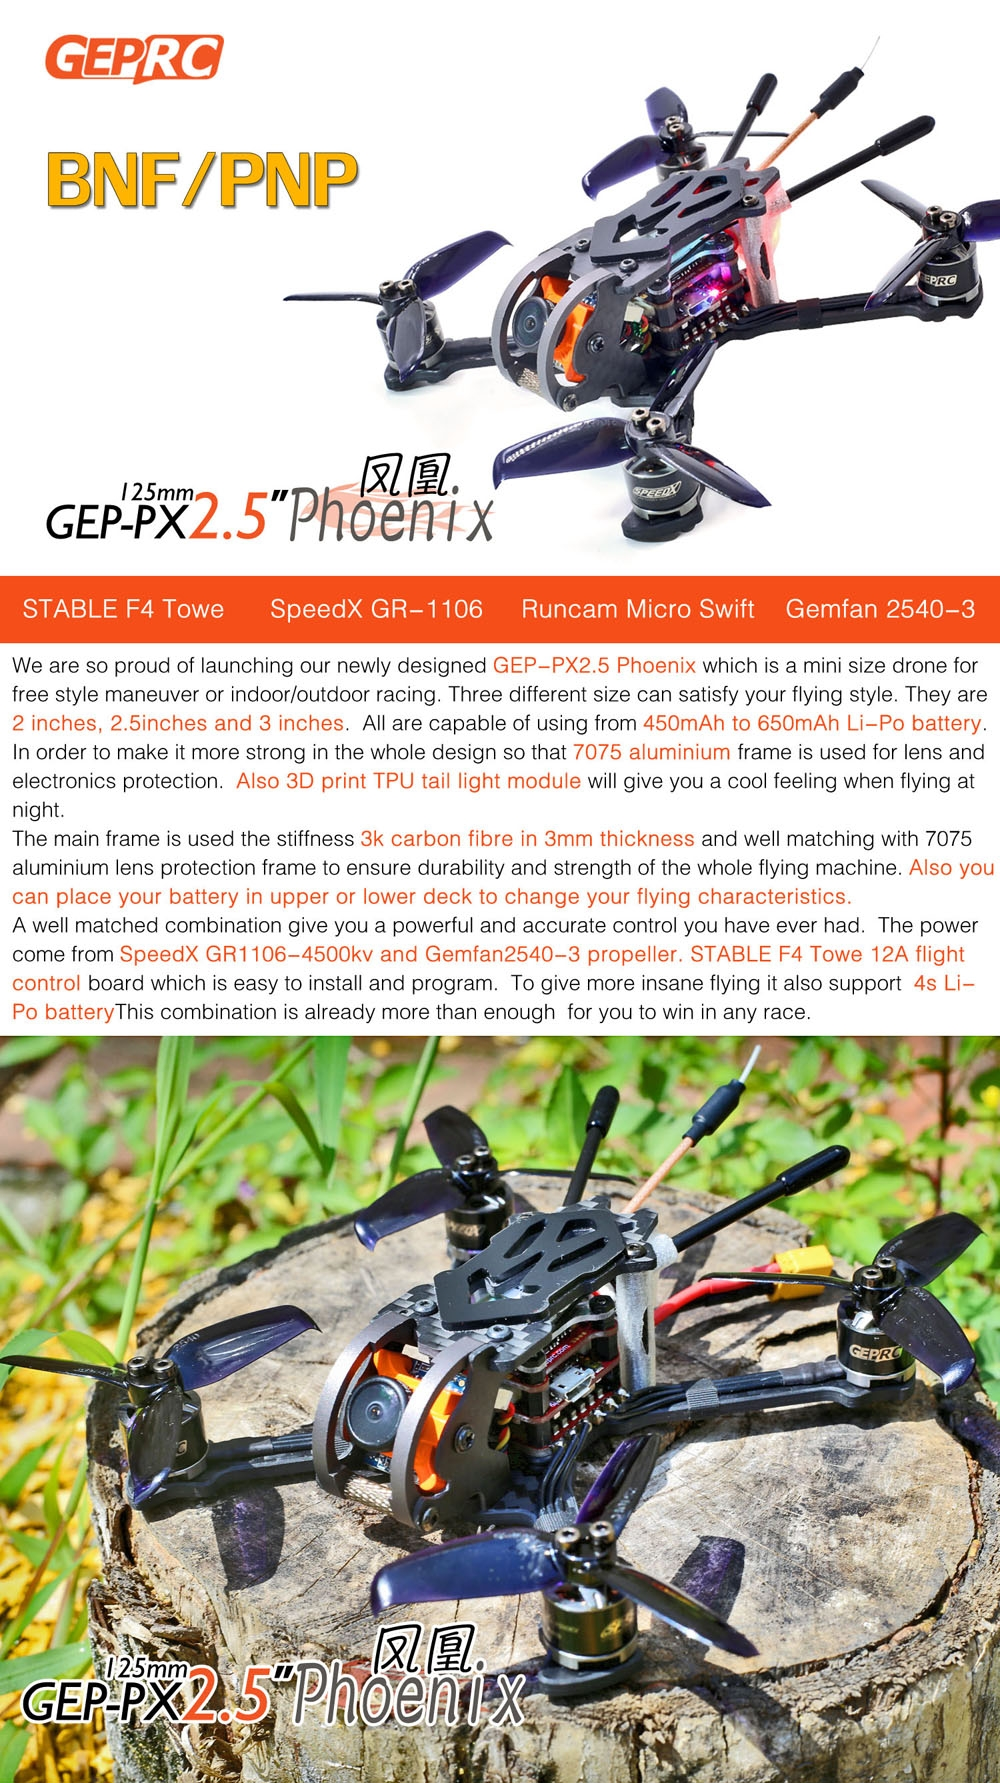 Summer Prime Sale GEPRC GEP-Phoenix 125mm FPV Racing Drone BNF Omnibus F4 RunCam Micro Swift 600TVL Camera